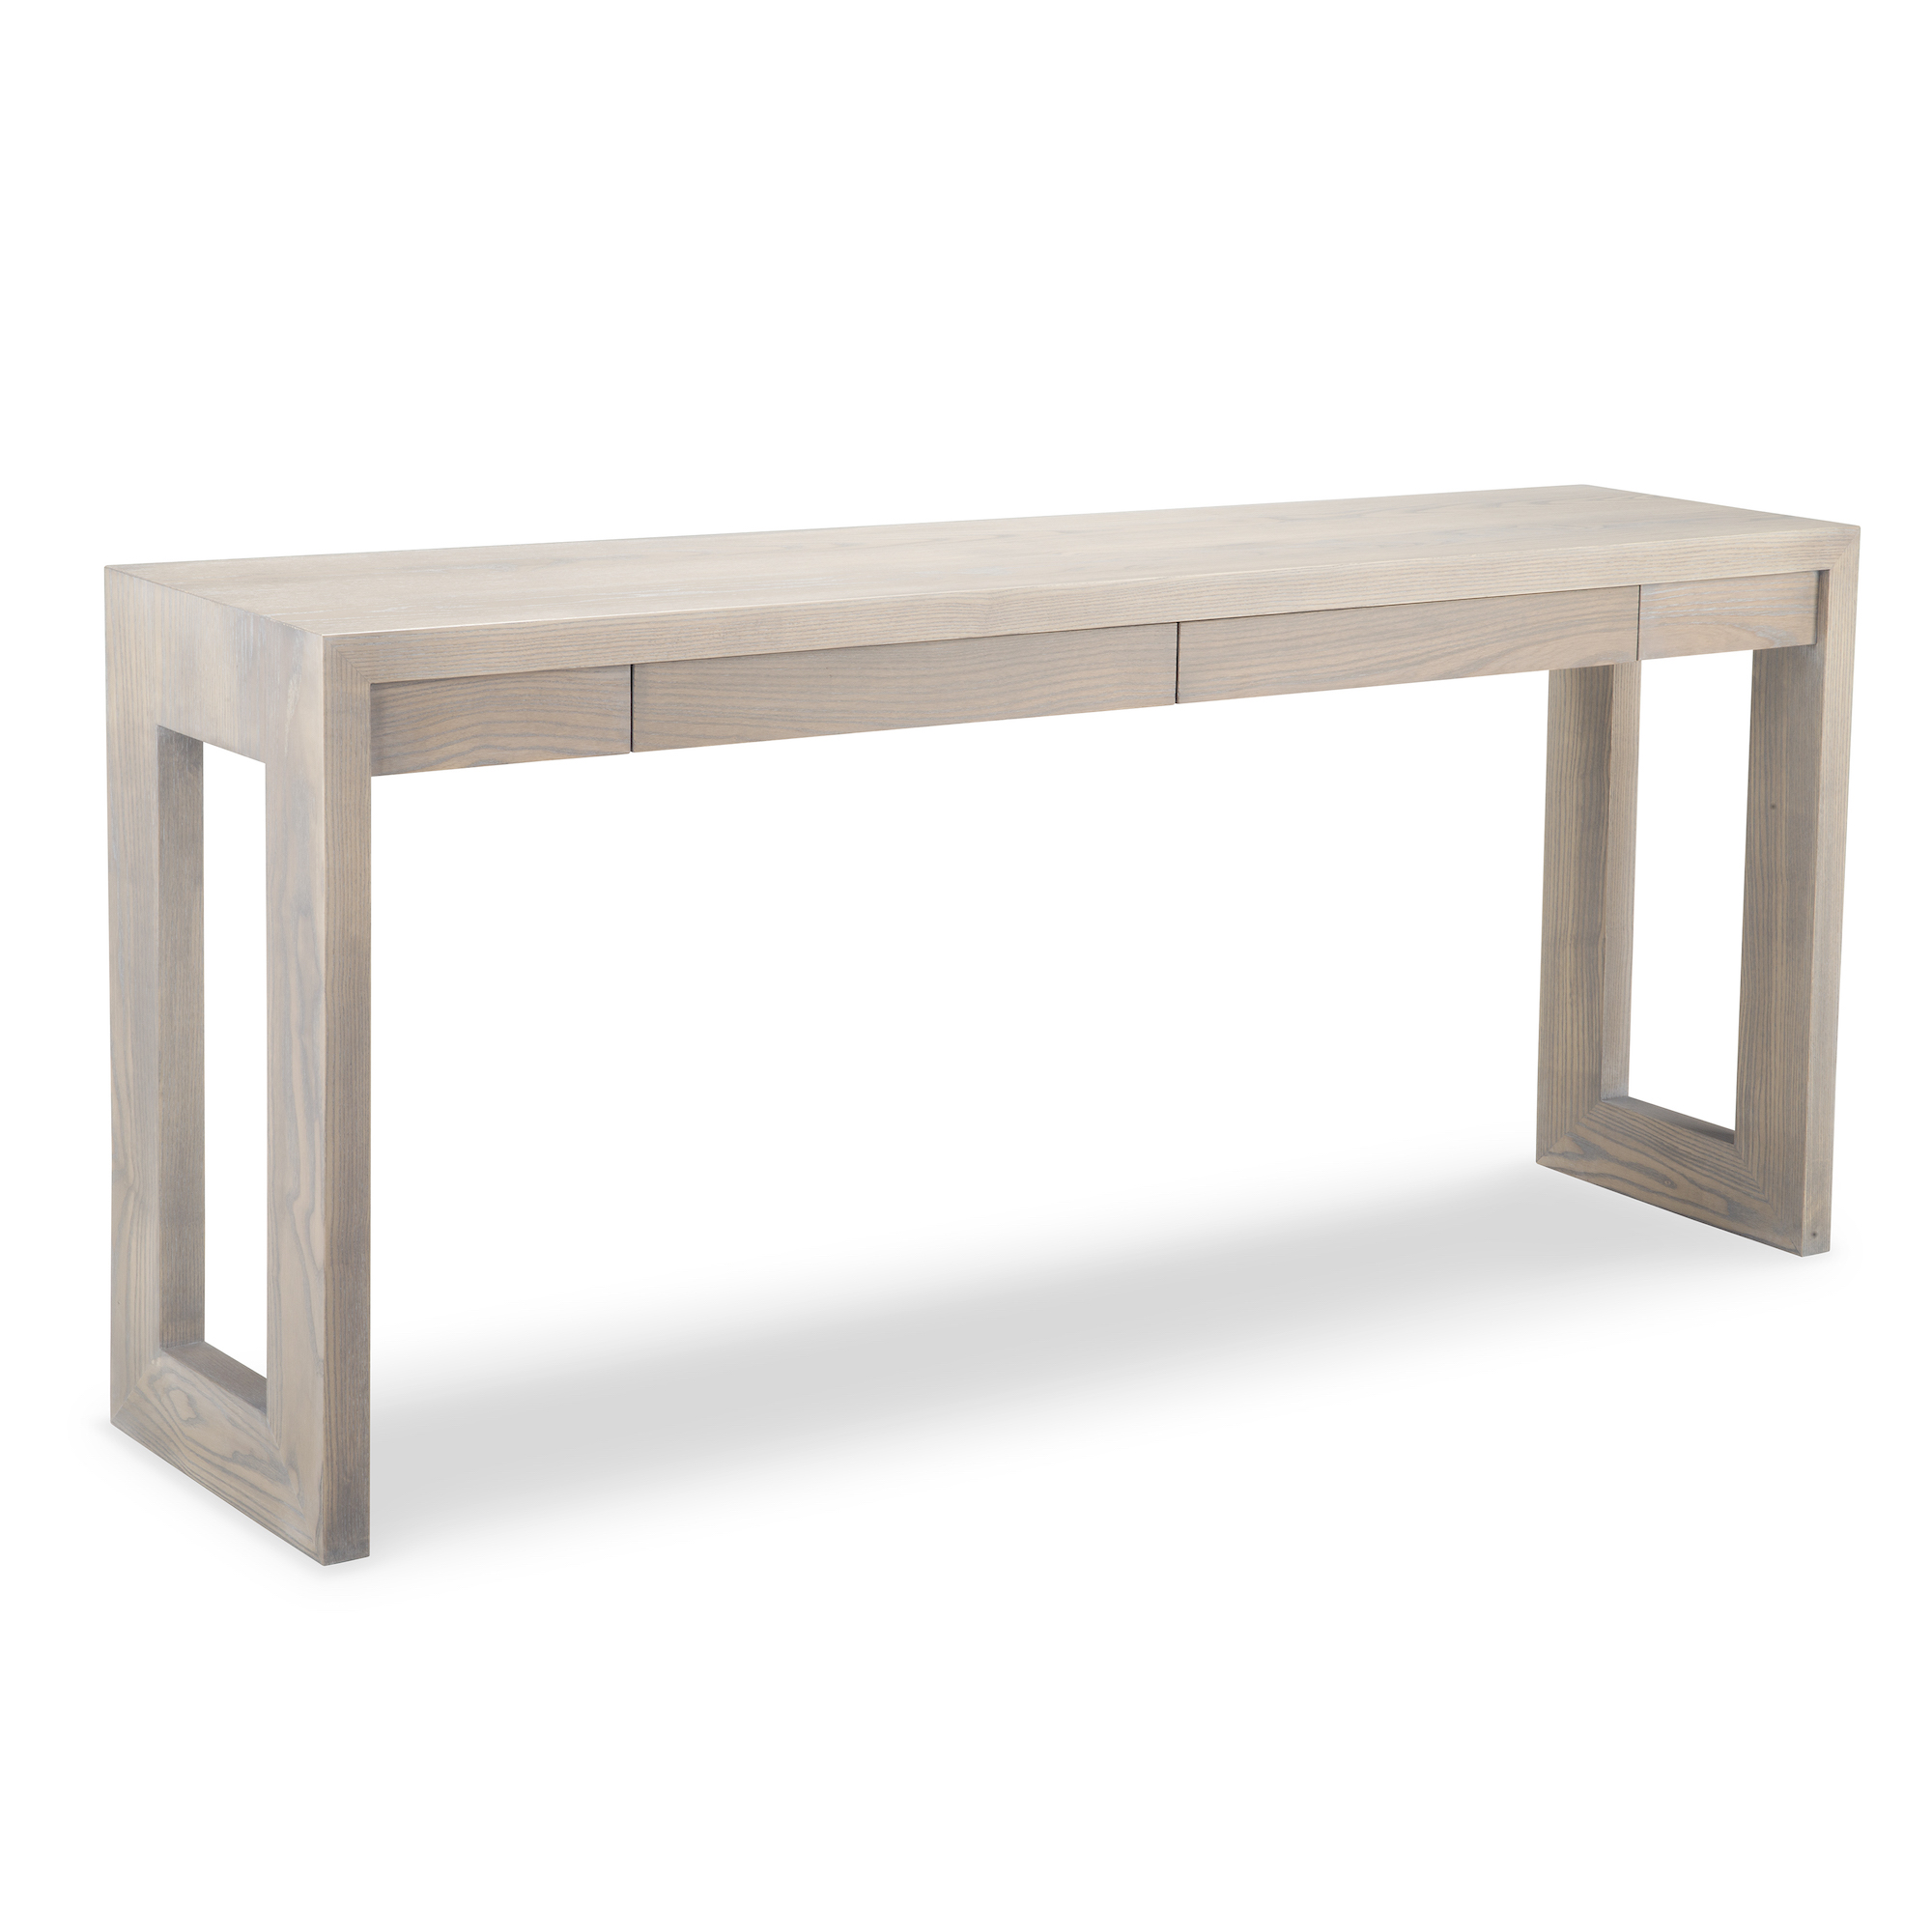 Fifshire_Sofa_Table_Angled-2.jpg